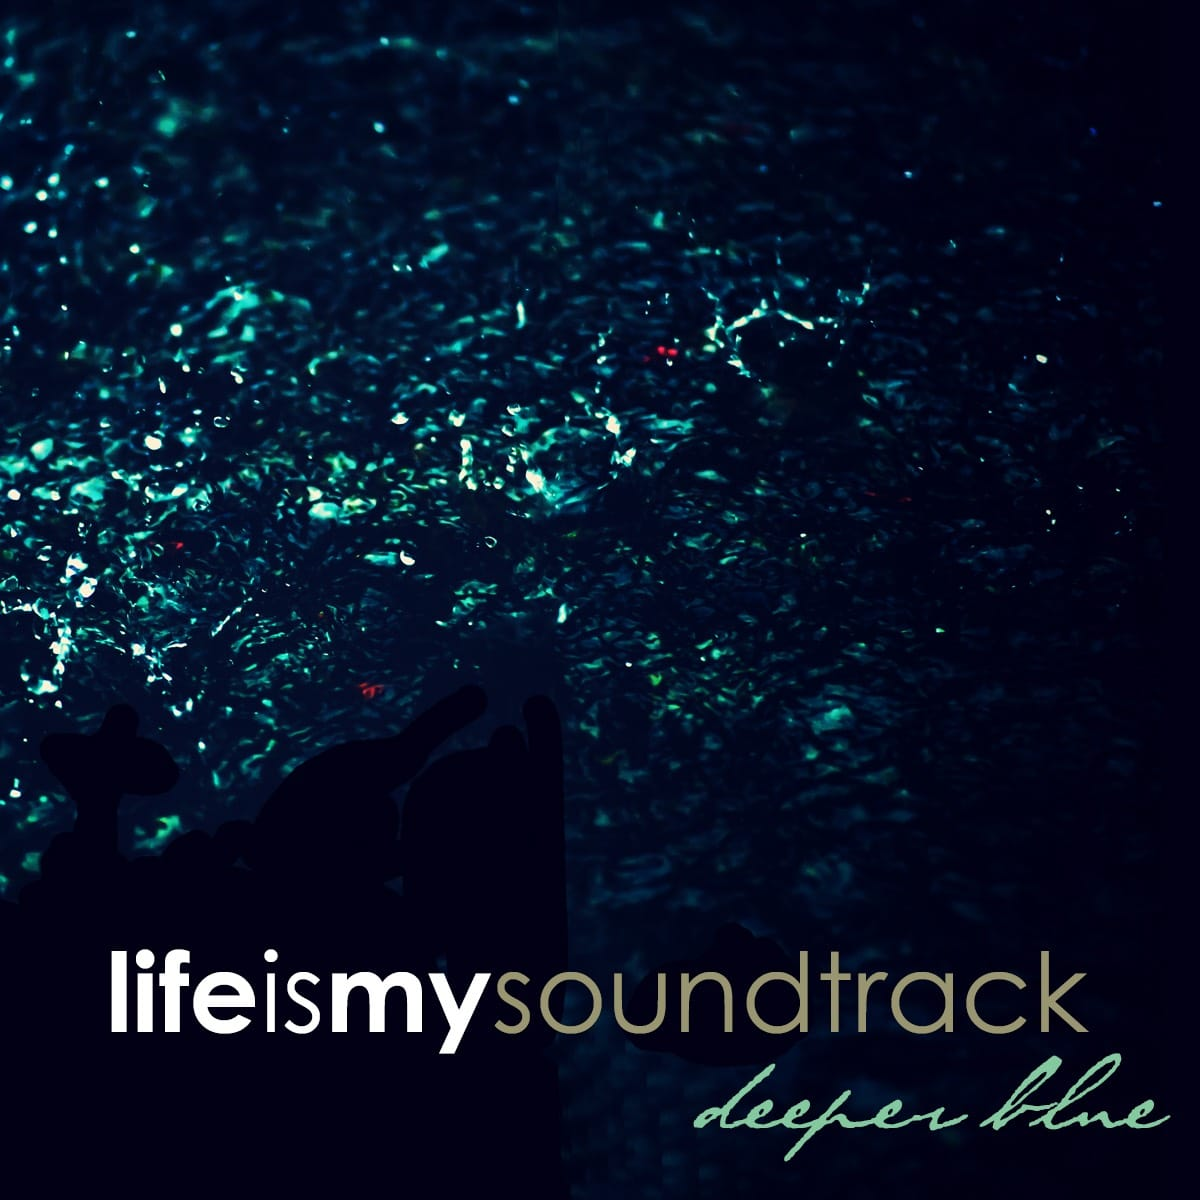 The album Deeper Blue by Life Is My Soundtrack - Electronic music inspired by the five pelagic zones